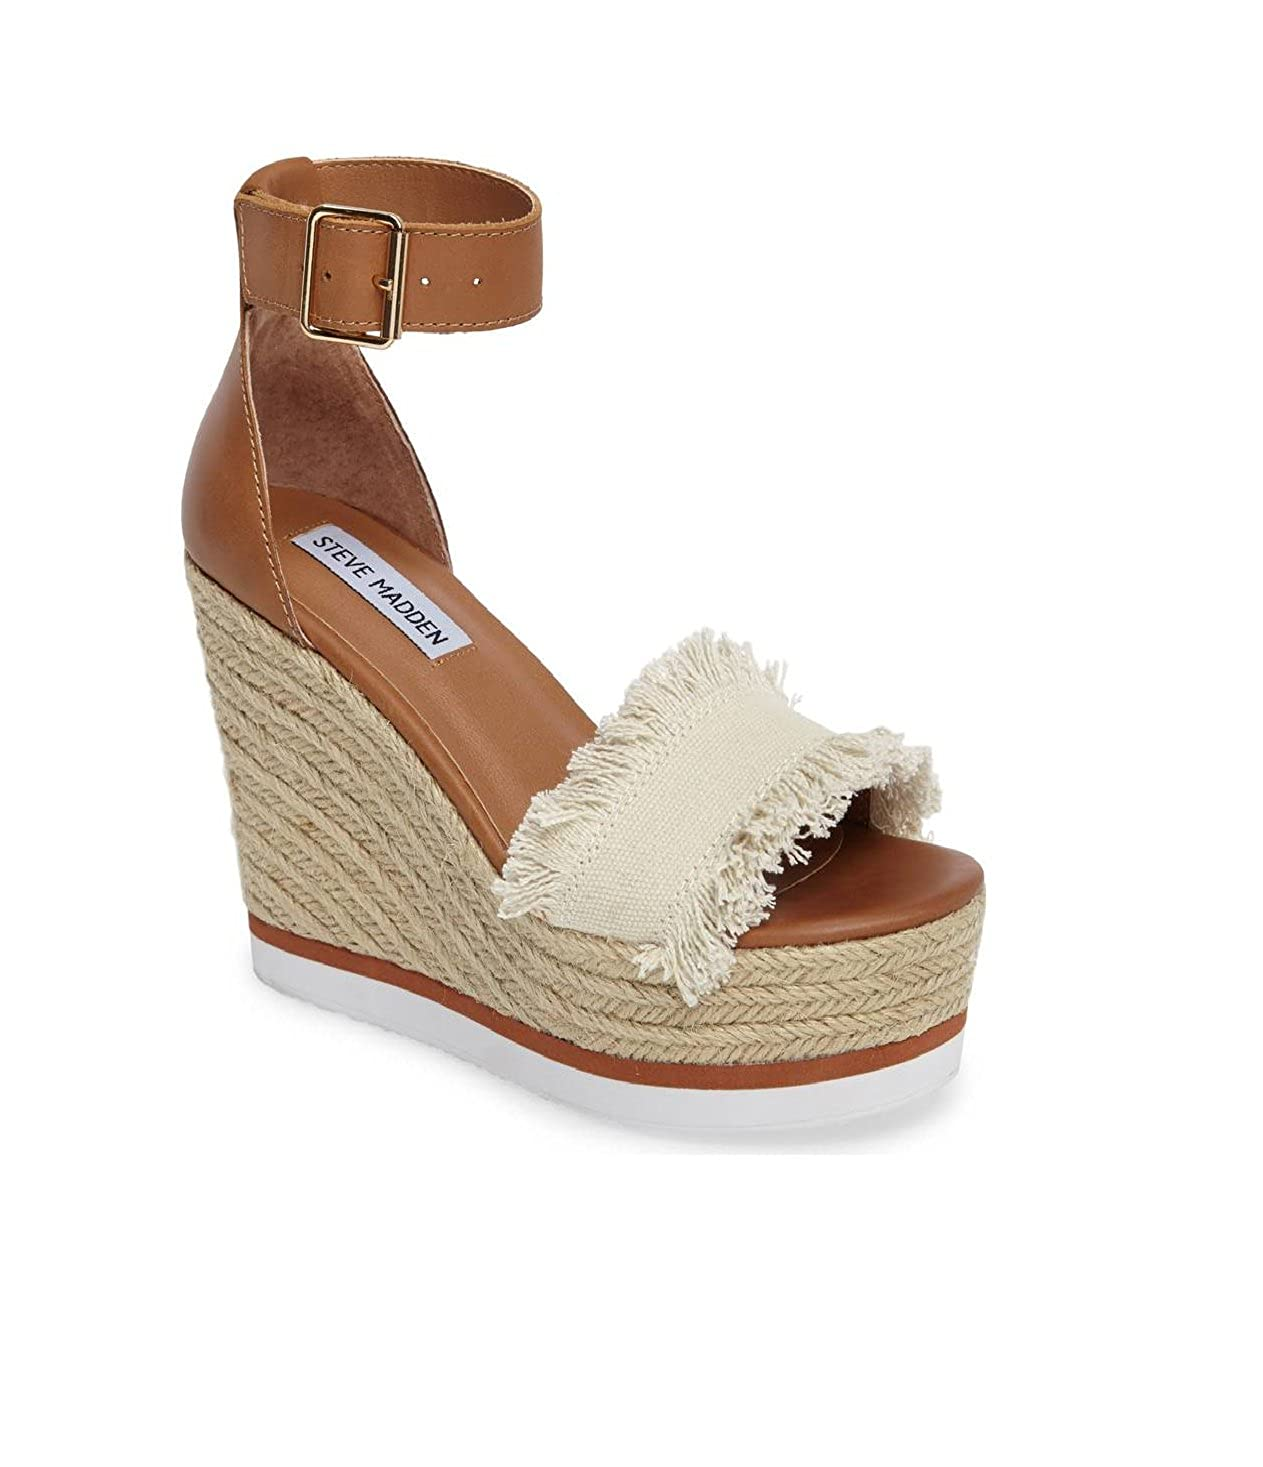 Steve Madden Valley Fringed Platform Wedge Sandal, Beige (11 B(M) US,  Beige): Amazon.ca: Shoes & Handbags